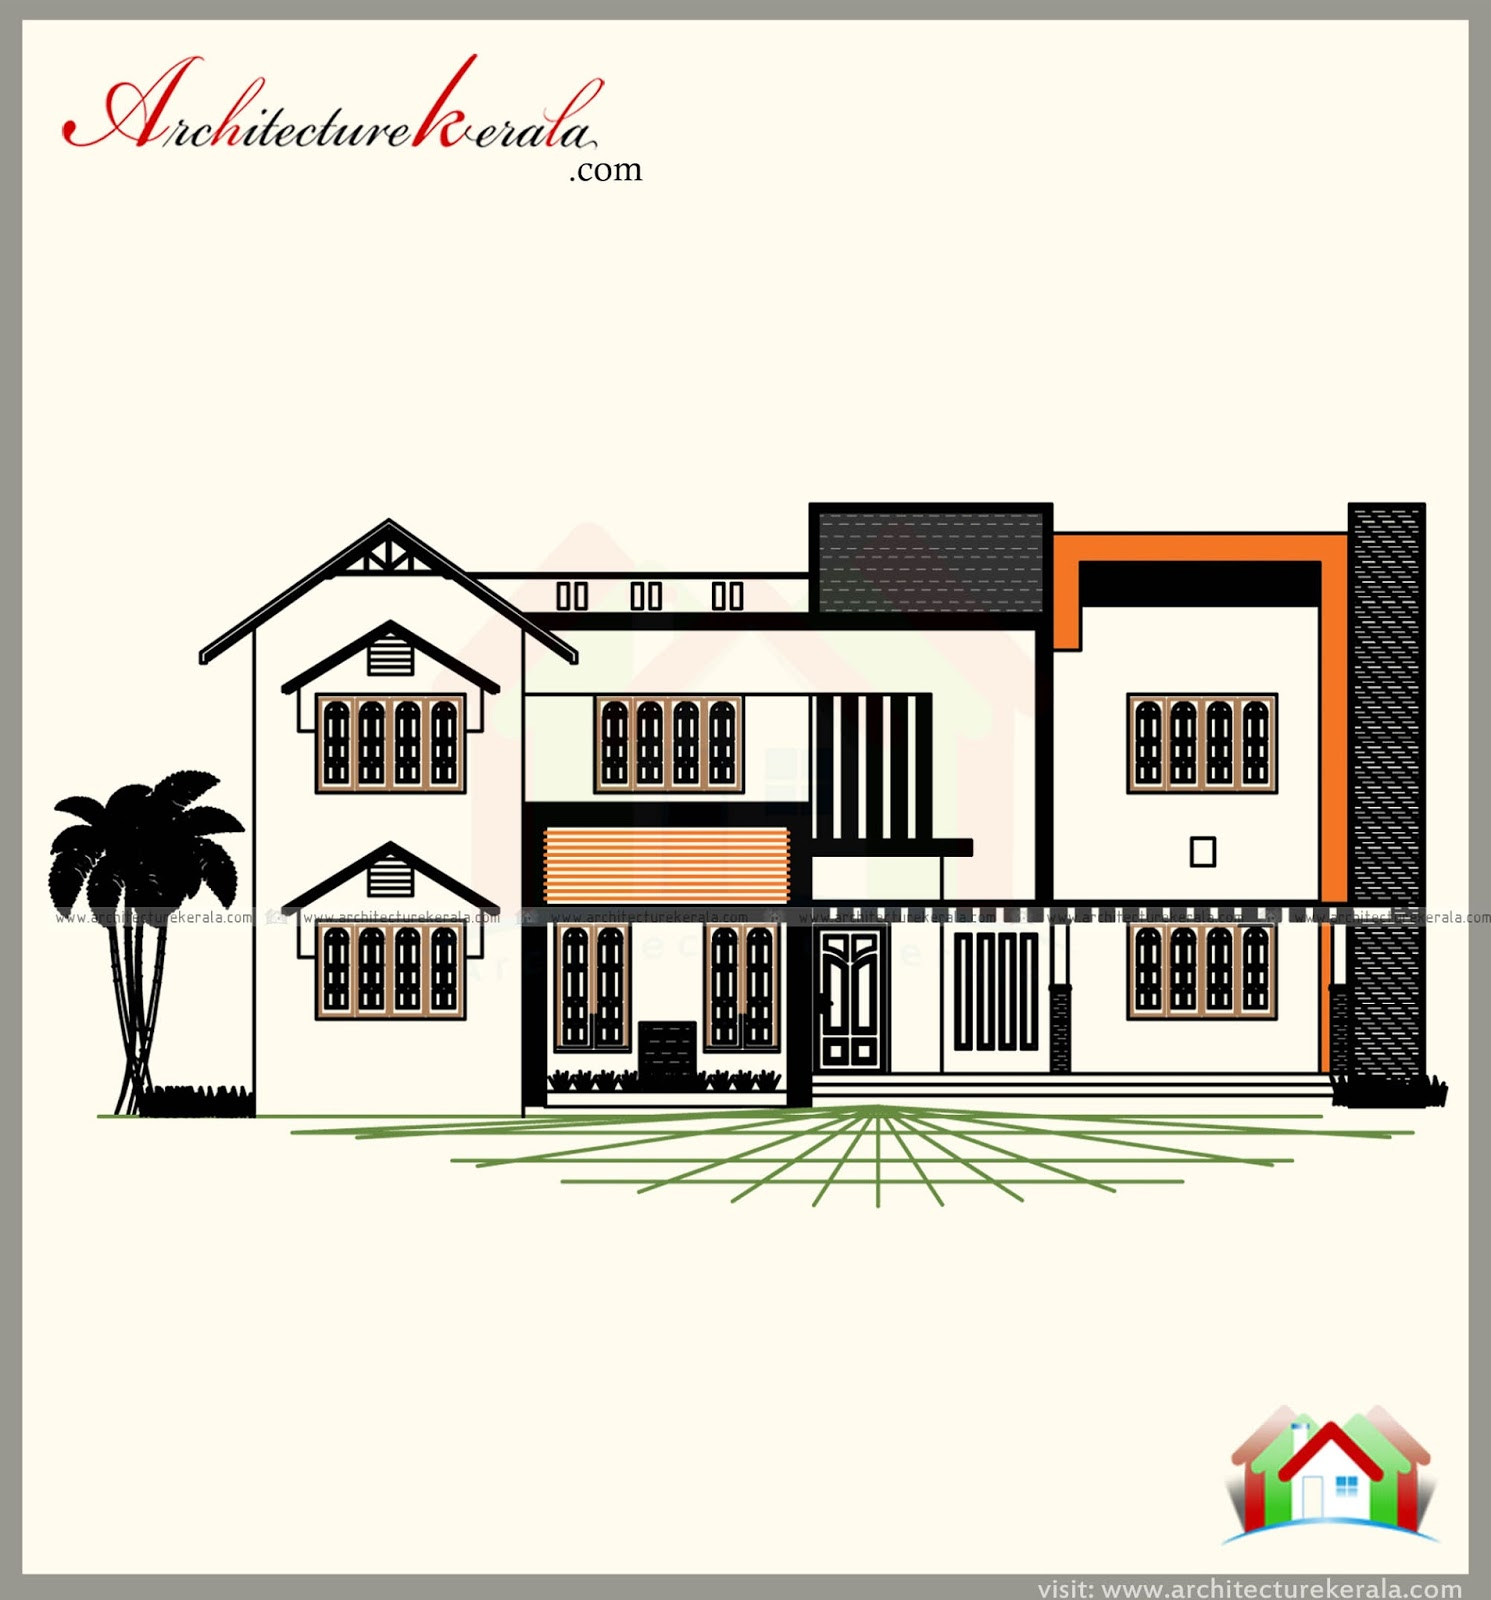 3000 SQUARE FEET HOUSE PLAN WITH 5 Bedrooms   Acha Homes on house plans over 5000 square feet, house plans over 4000 square feet, house plans over 15000 square feet,